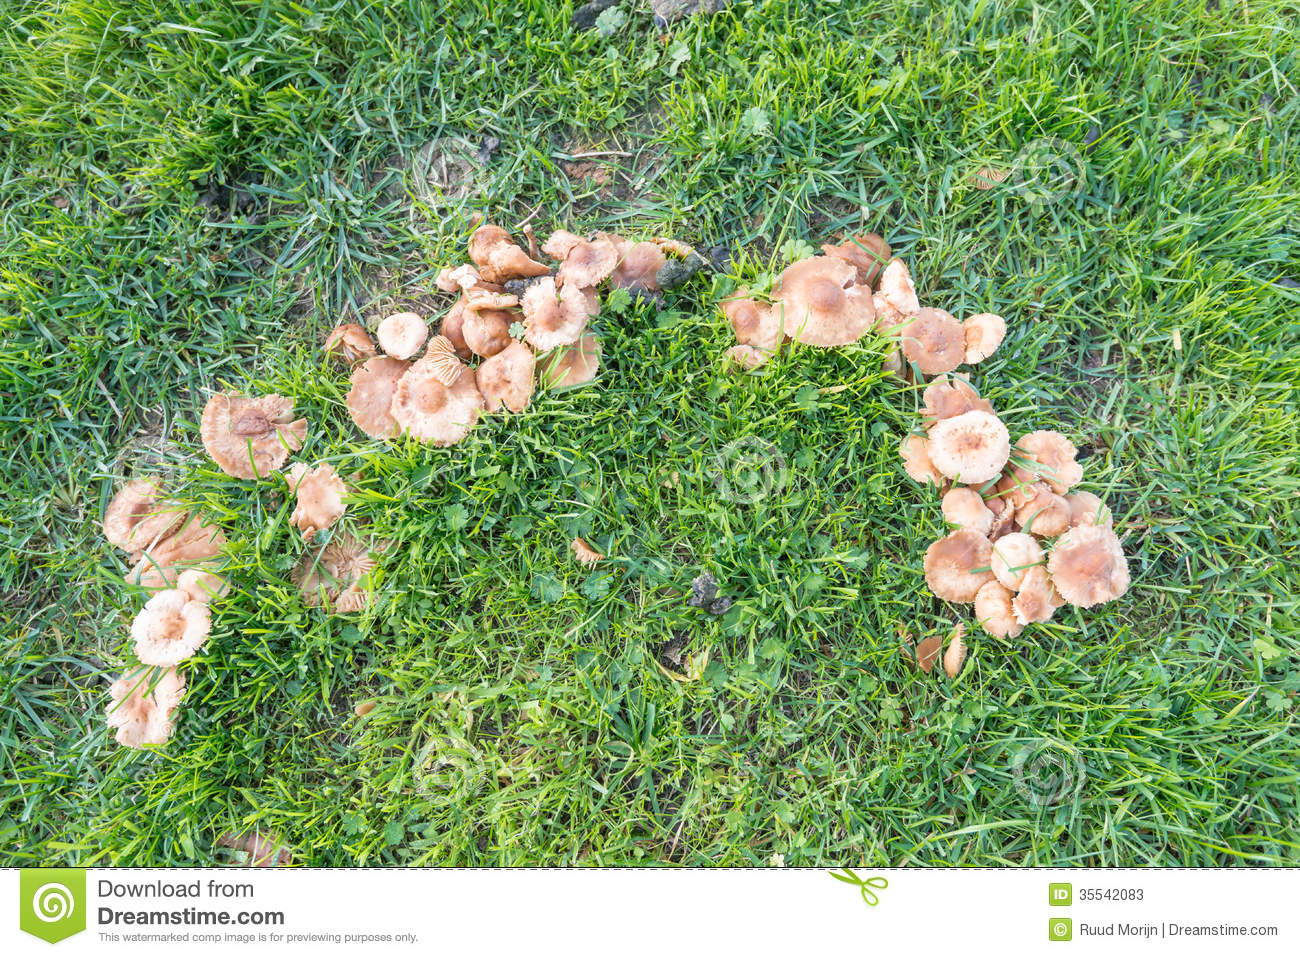 basidiomycetes to vs three approximately only midwestern fungi there ilex outcomes species plants of the are in rings family fairy turf however cause known riger